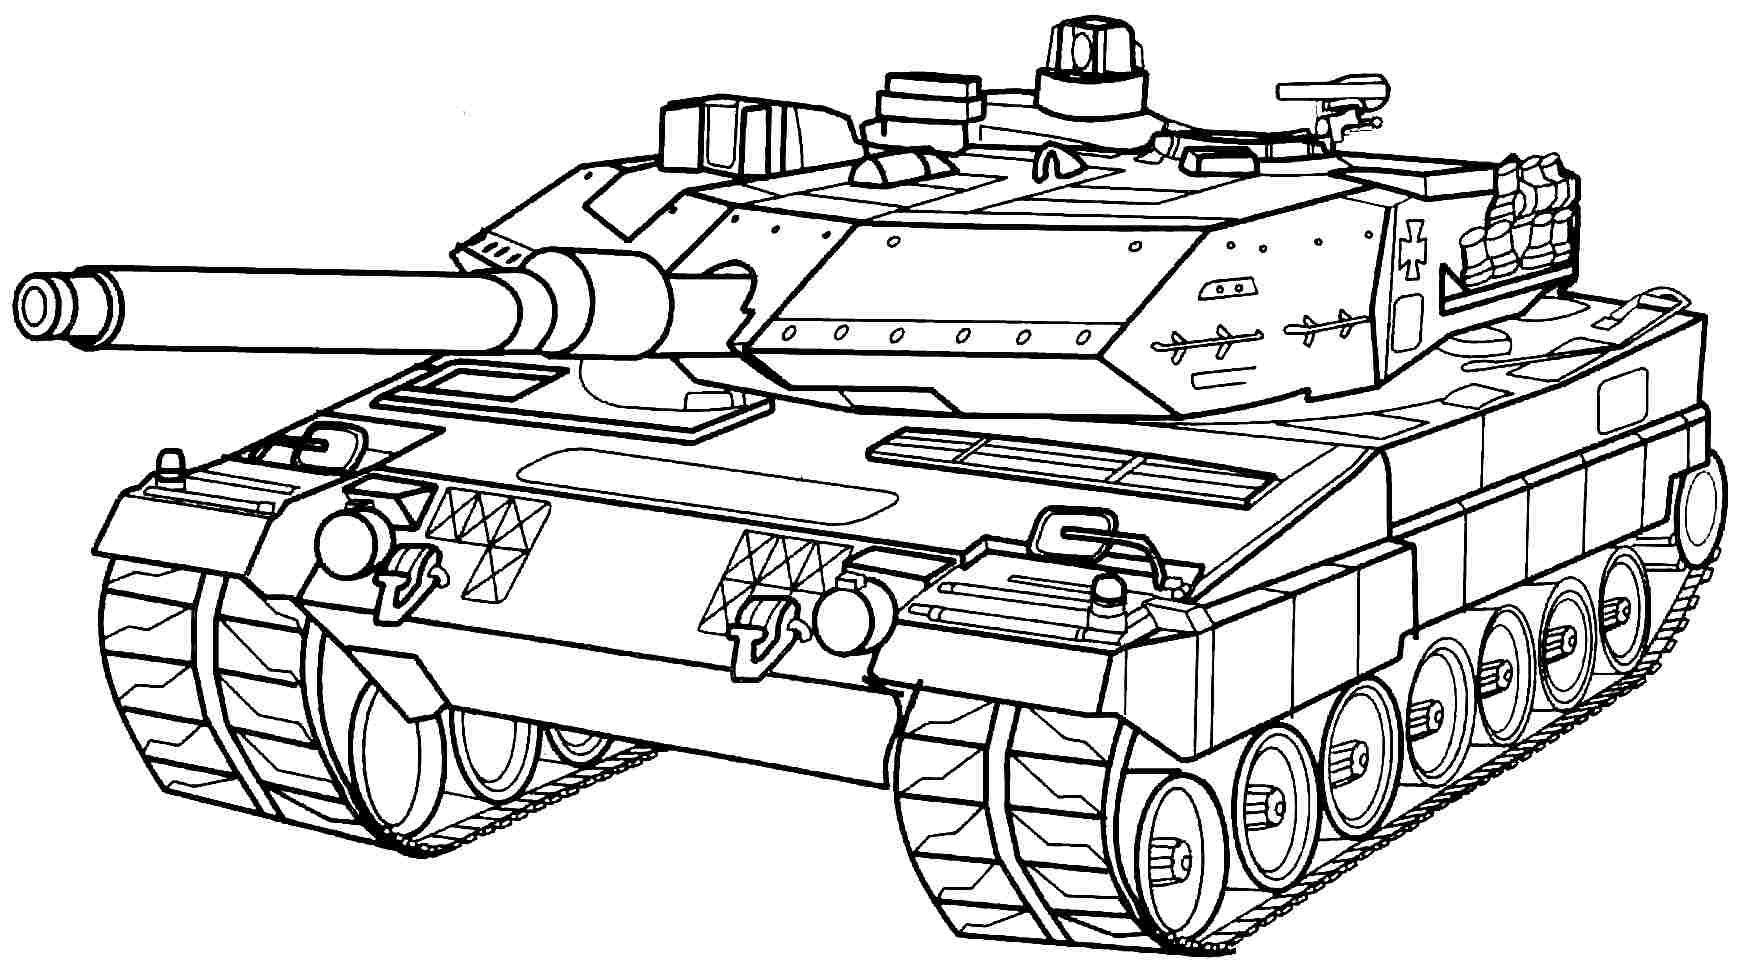 Printable Coloring Pages Army : Military coloring pages to download and print for free